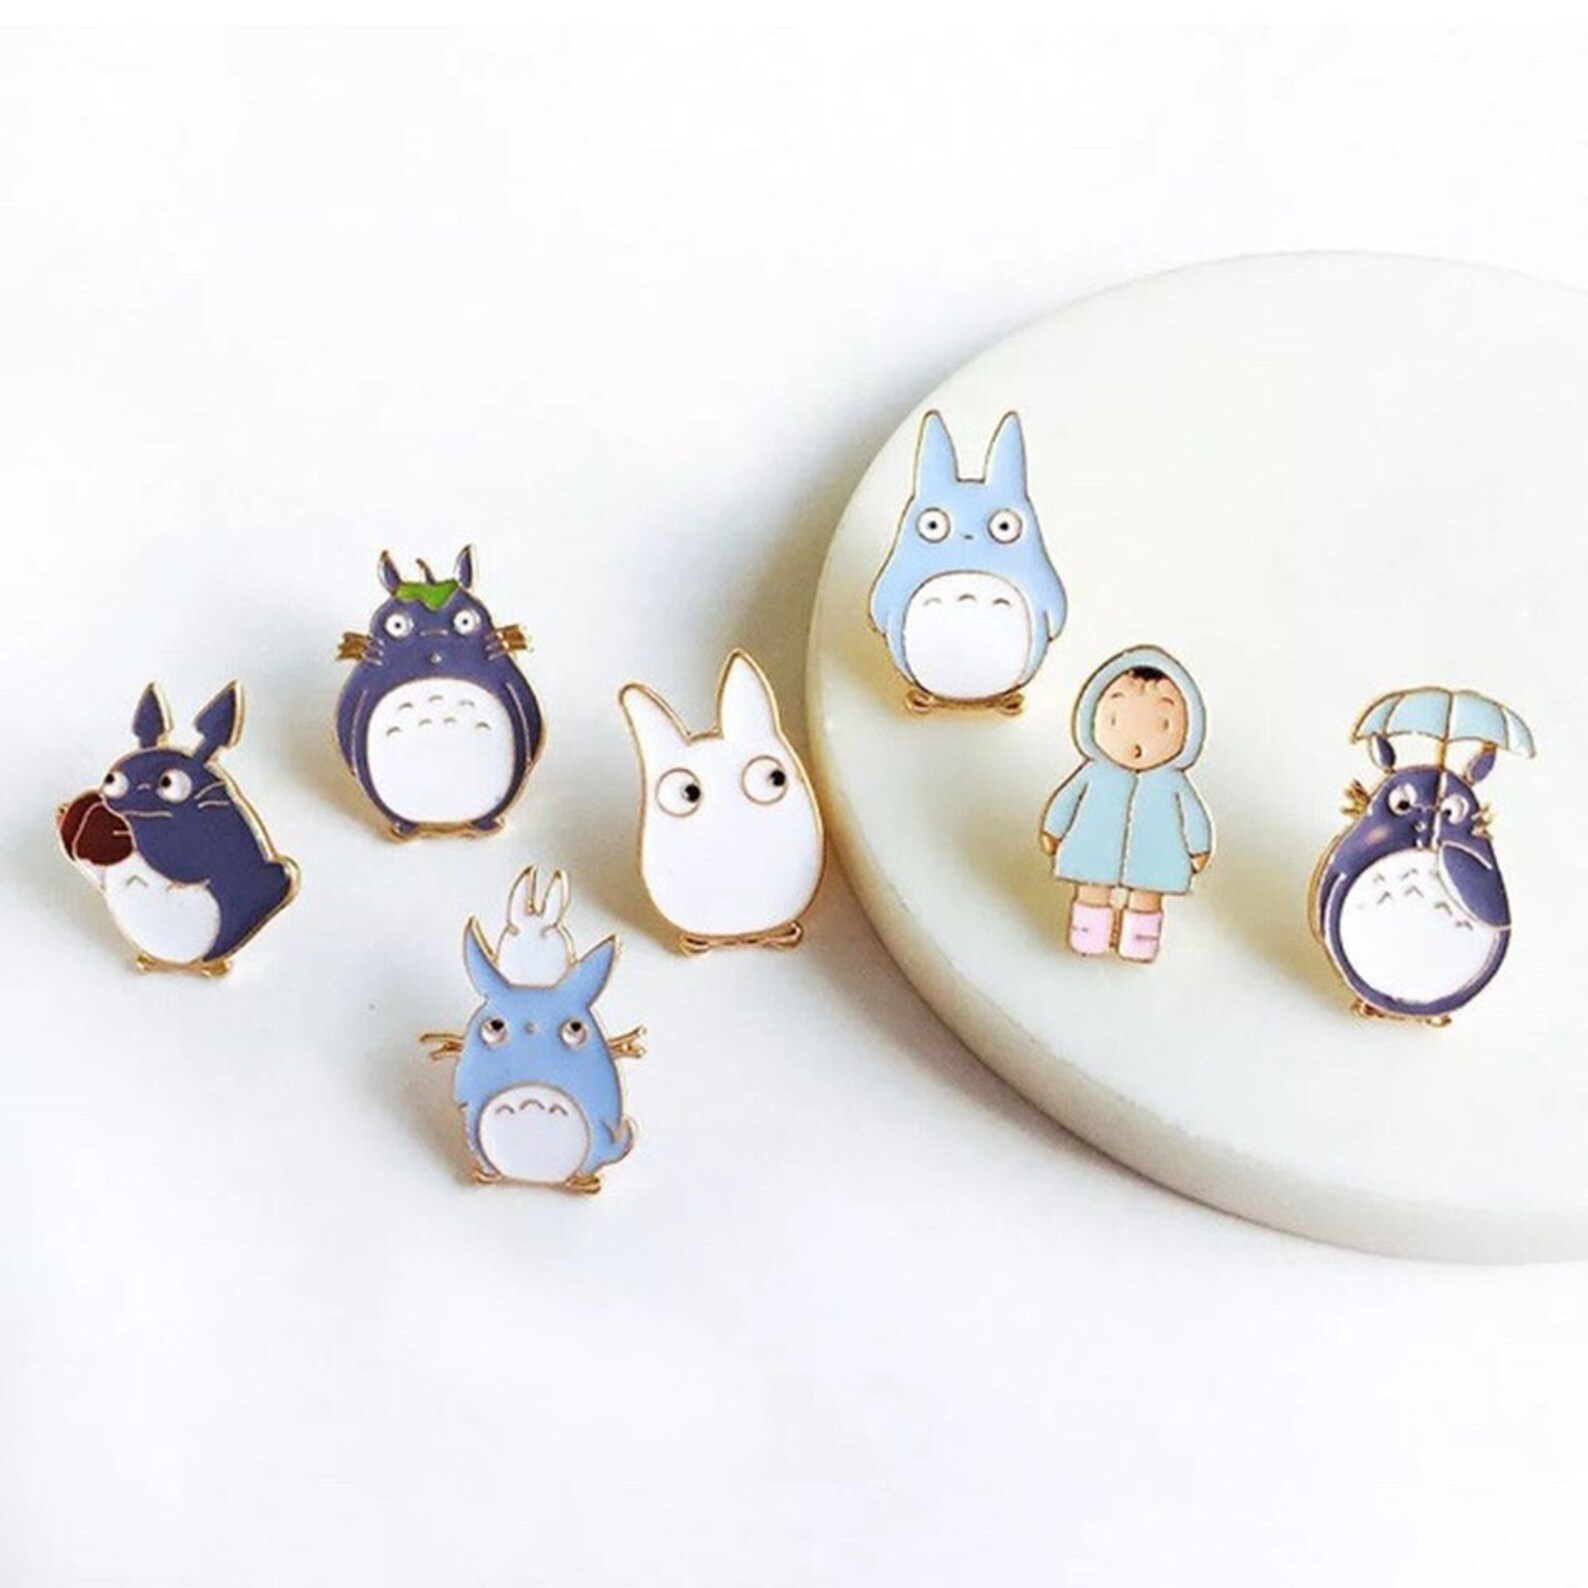 Totoro Pin Badge Set - Up to 7 Badges